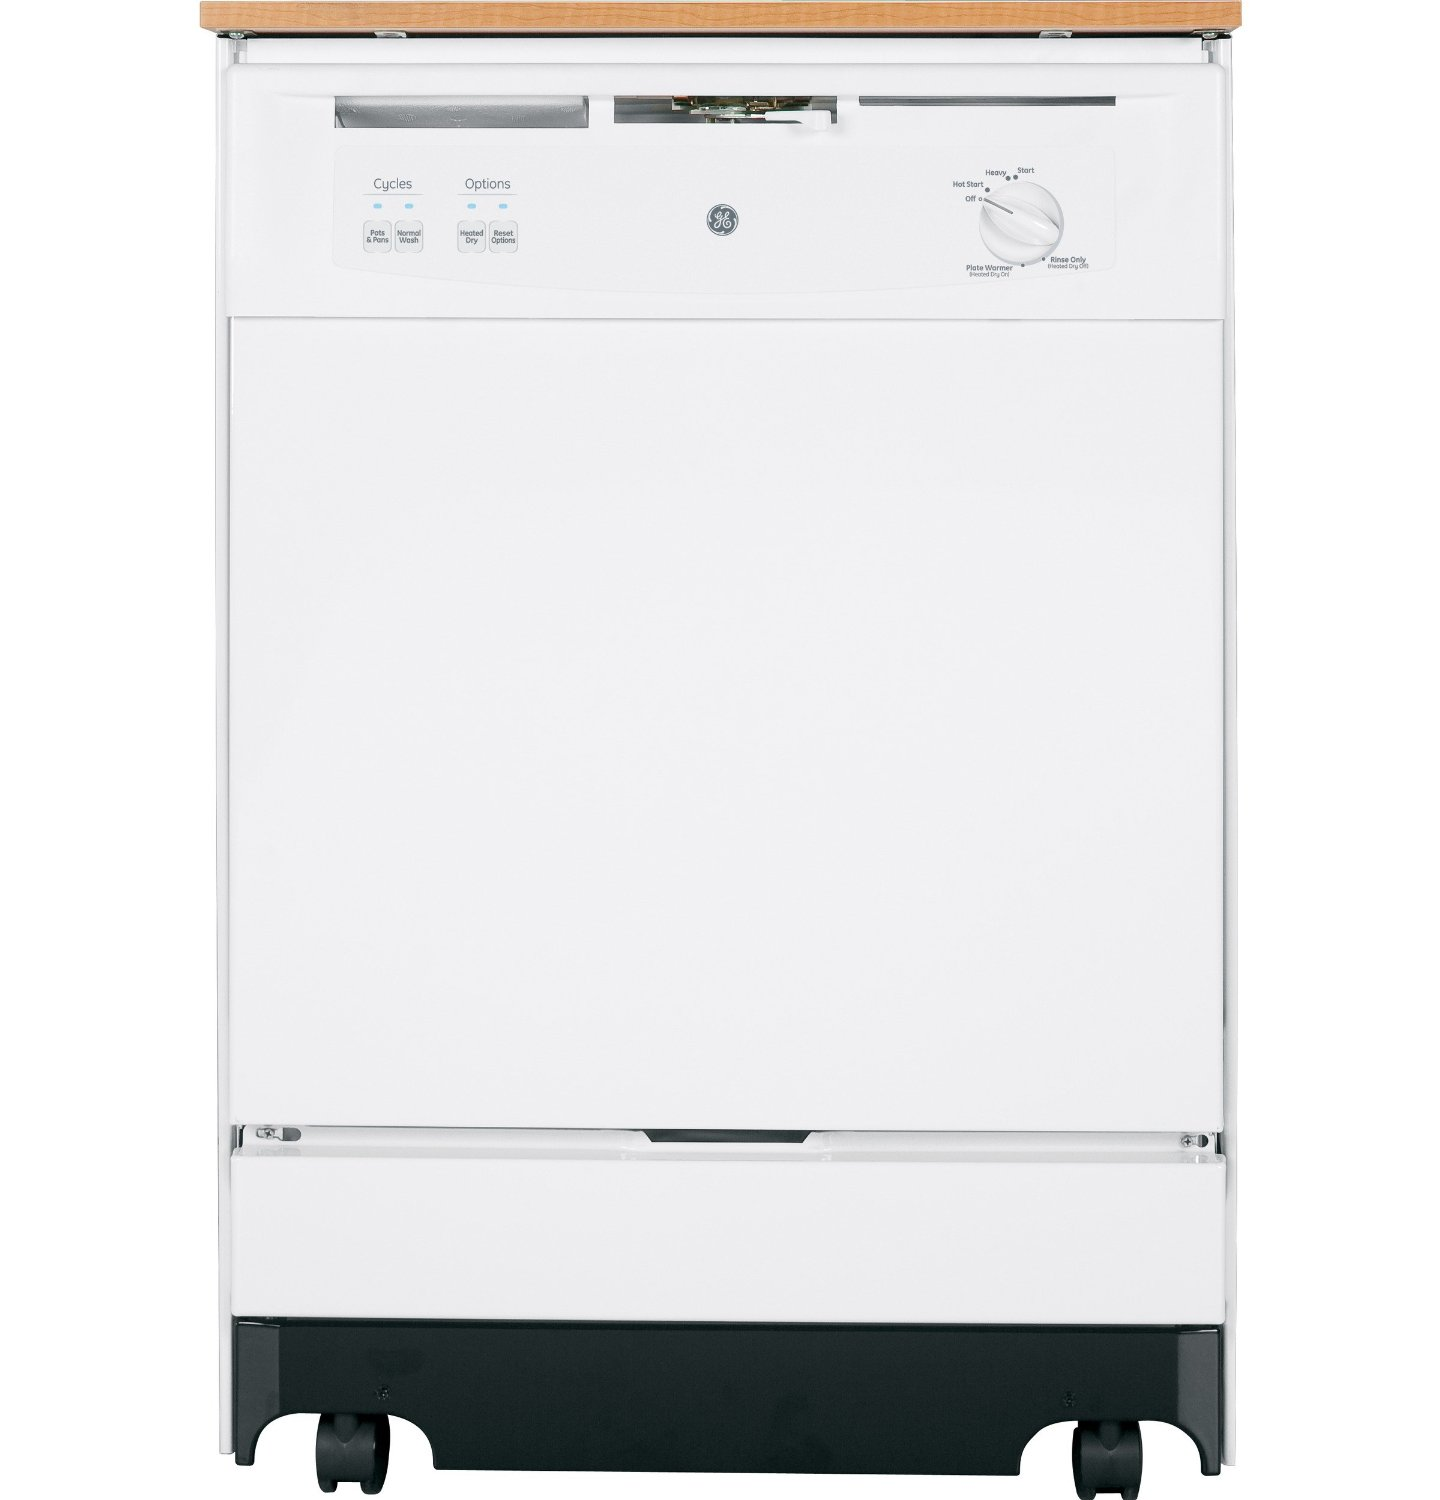 GE GSC3500DWW Portable, Full Console Dishwasher